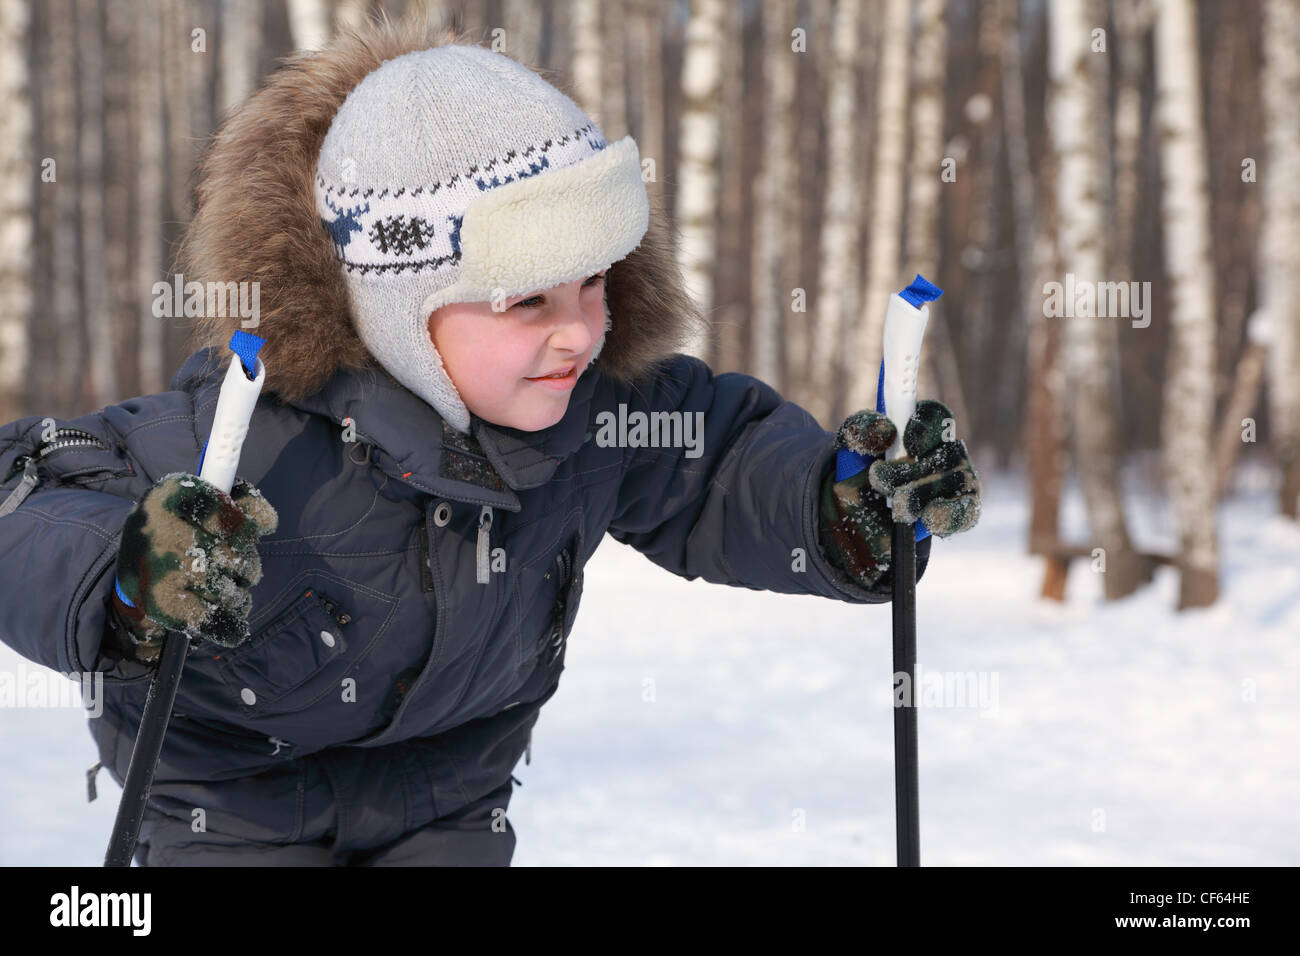 Portrait of young boy with ski poles looking to side inside winter forest at sunny day - Stock Image